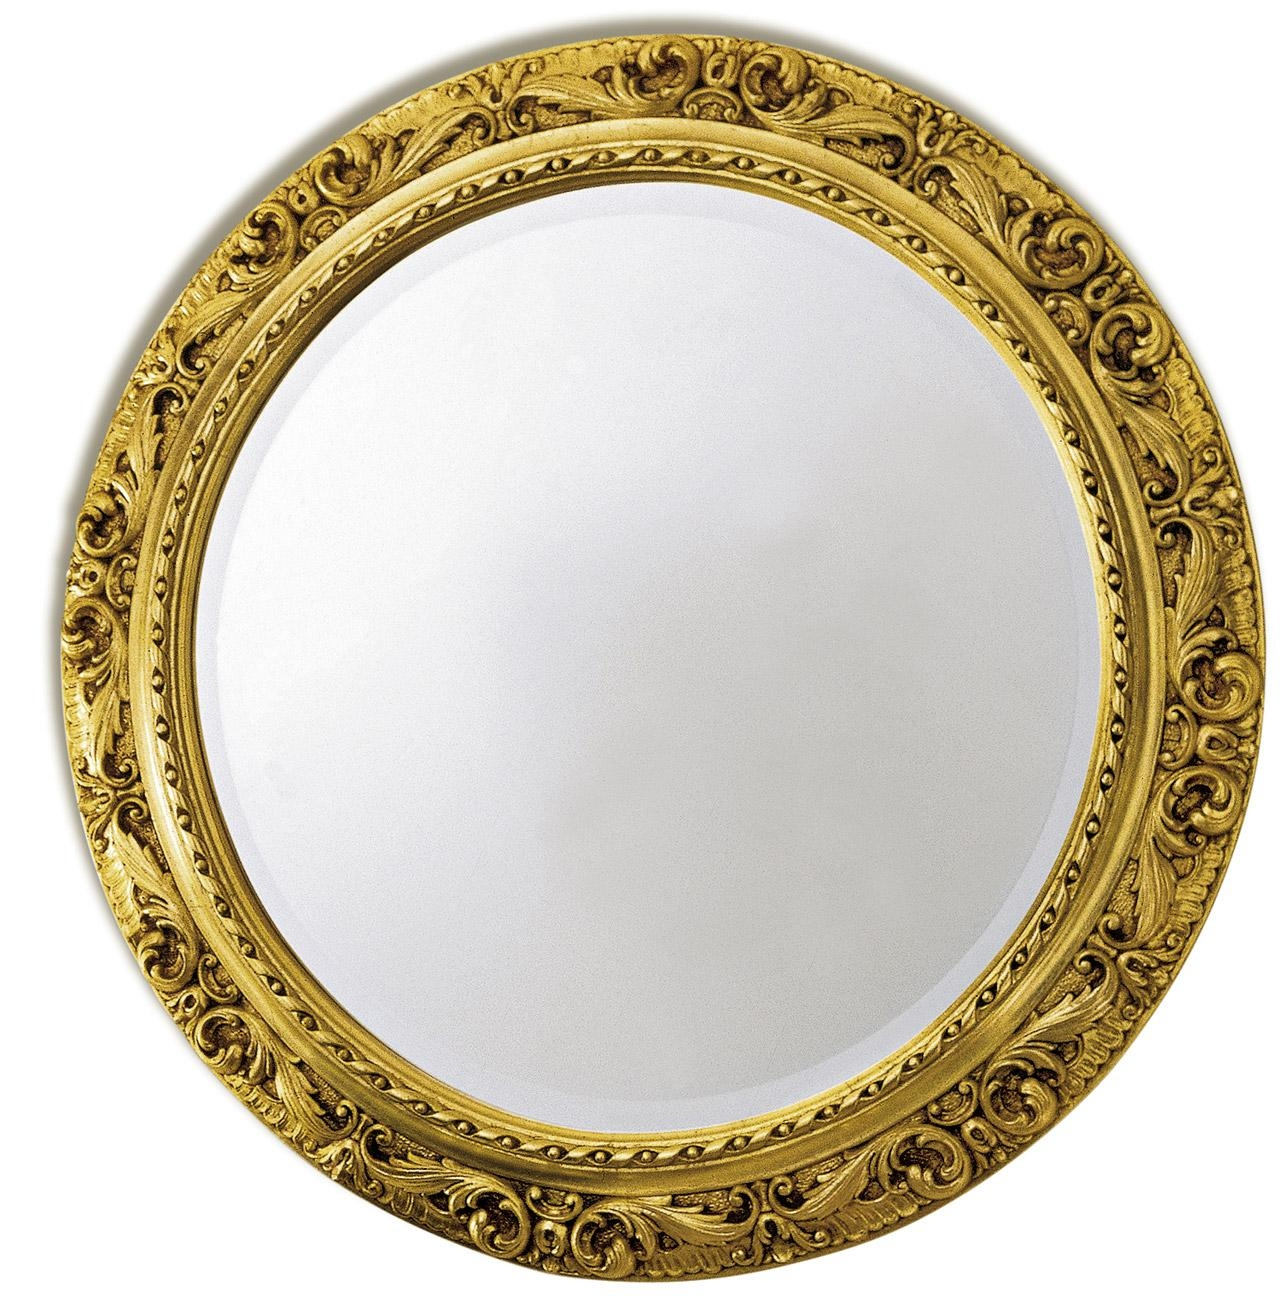 Products – Mirrors And Console. Ballabio Italia S.a.s (Image 16 of 20)